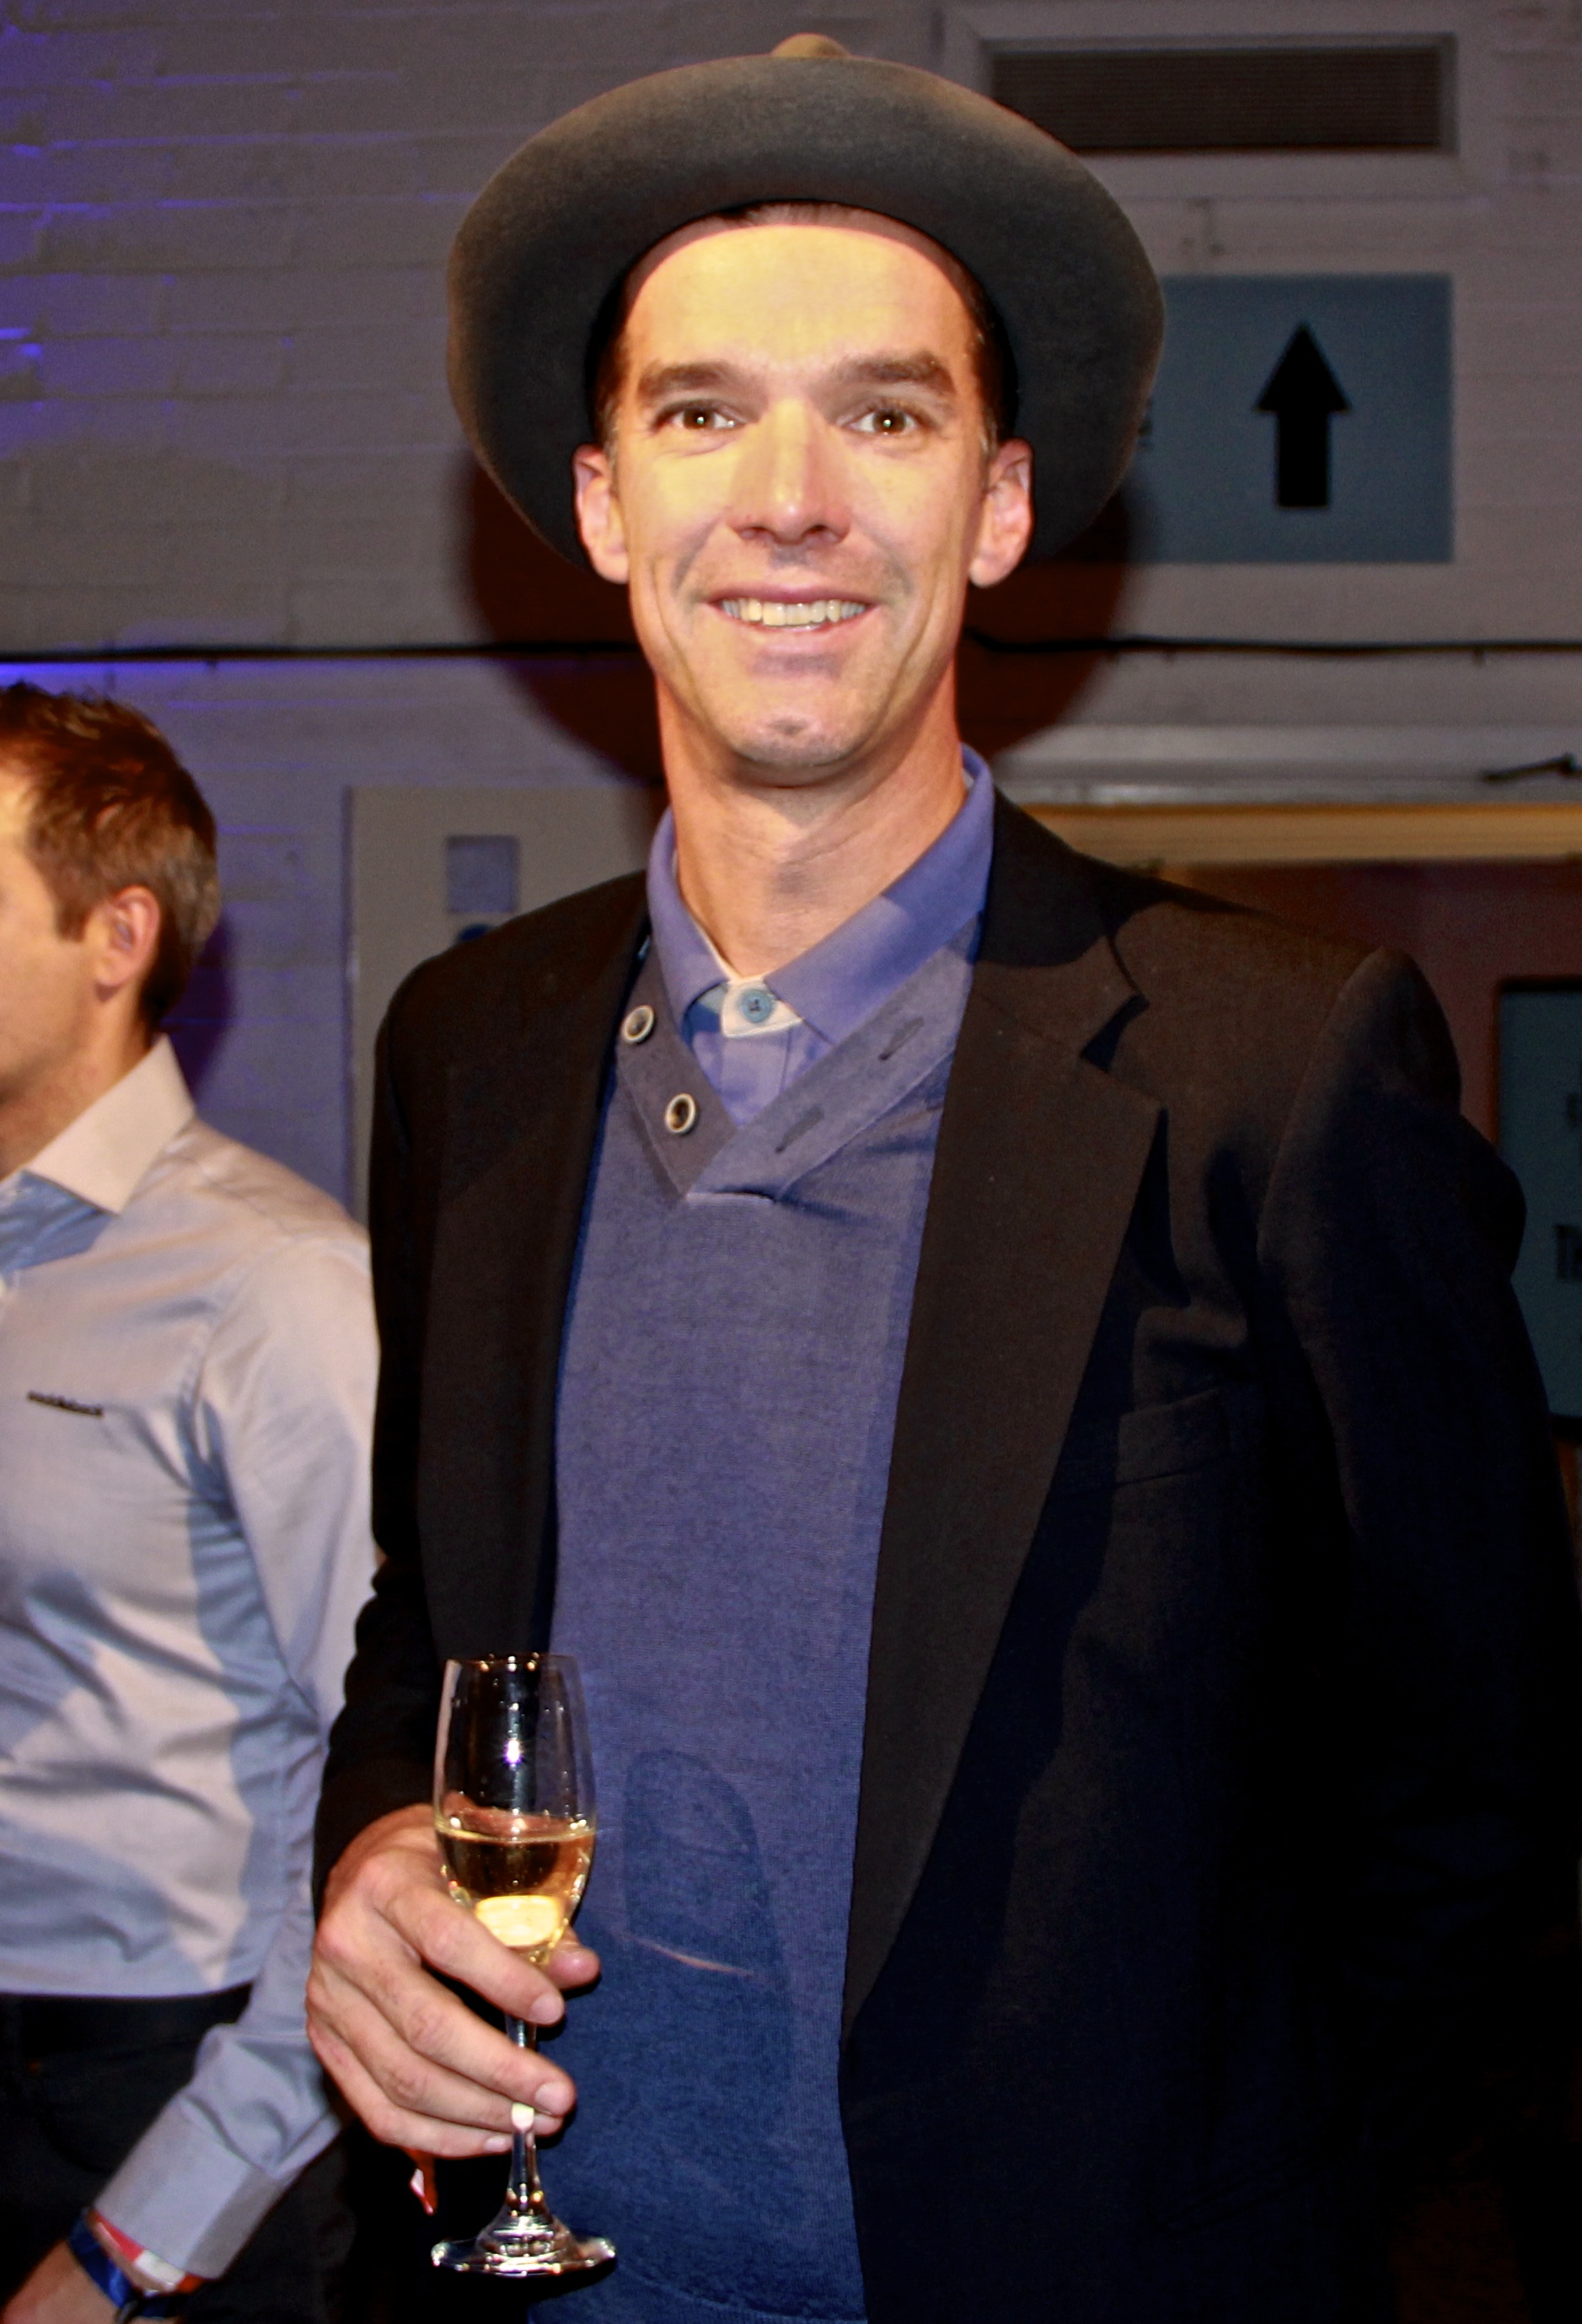 Reaping the rewards of retirement: David Millar in relaxed mode